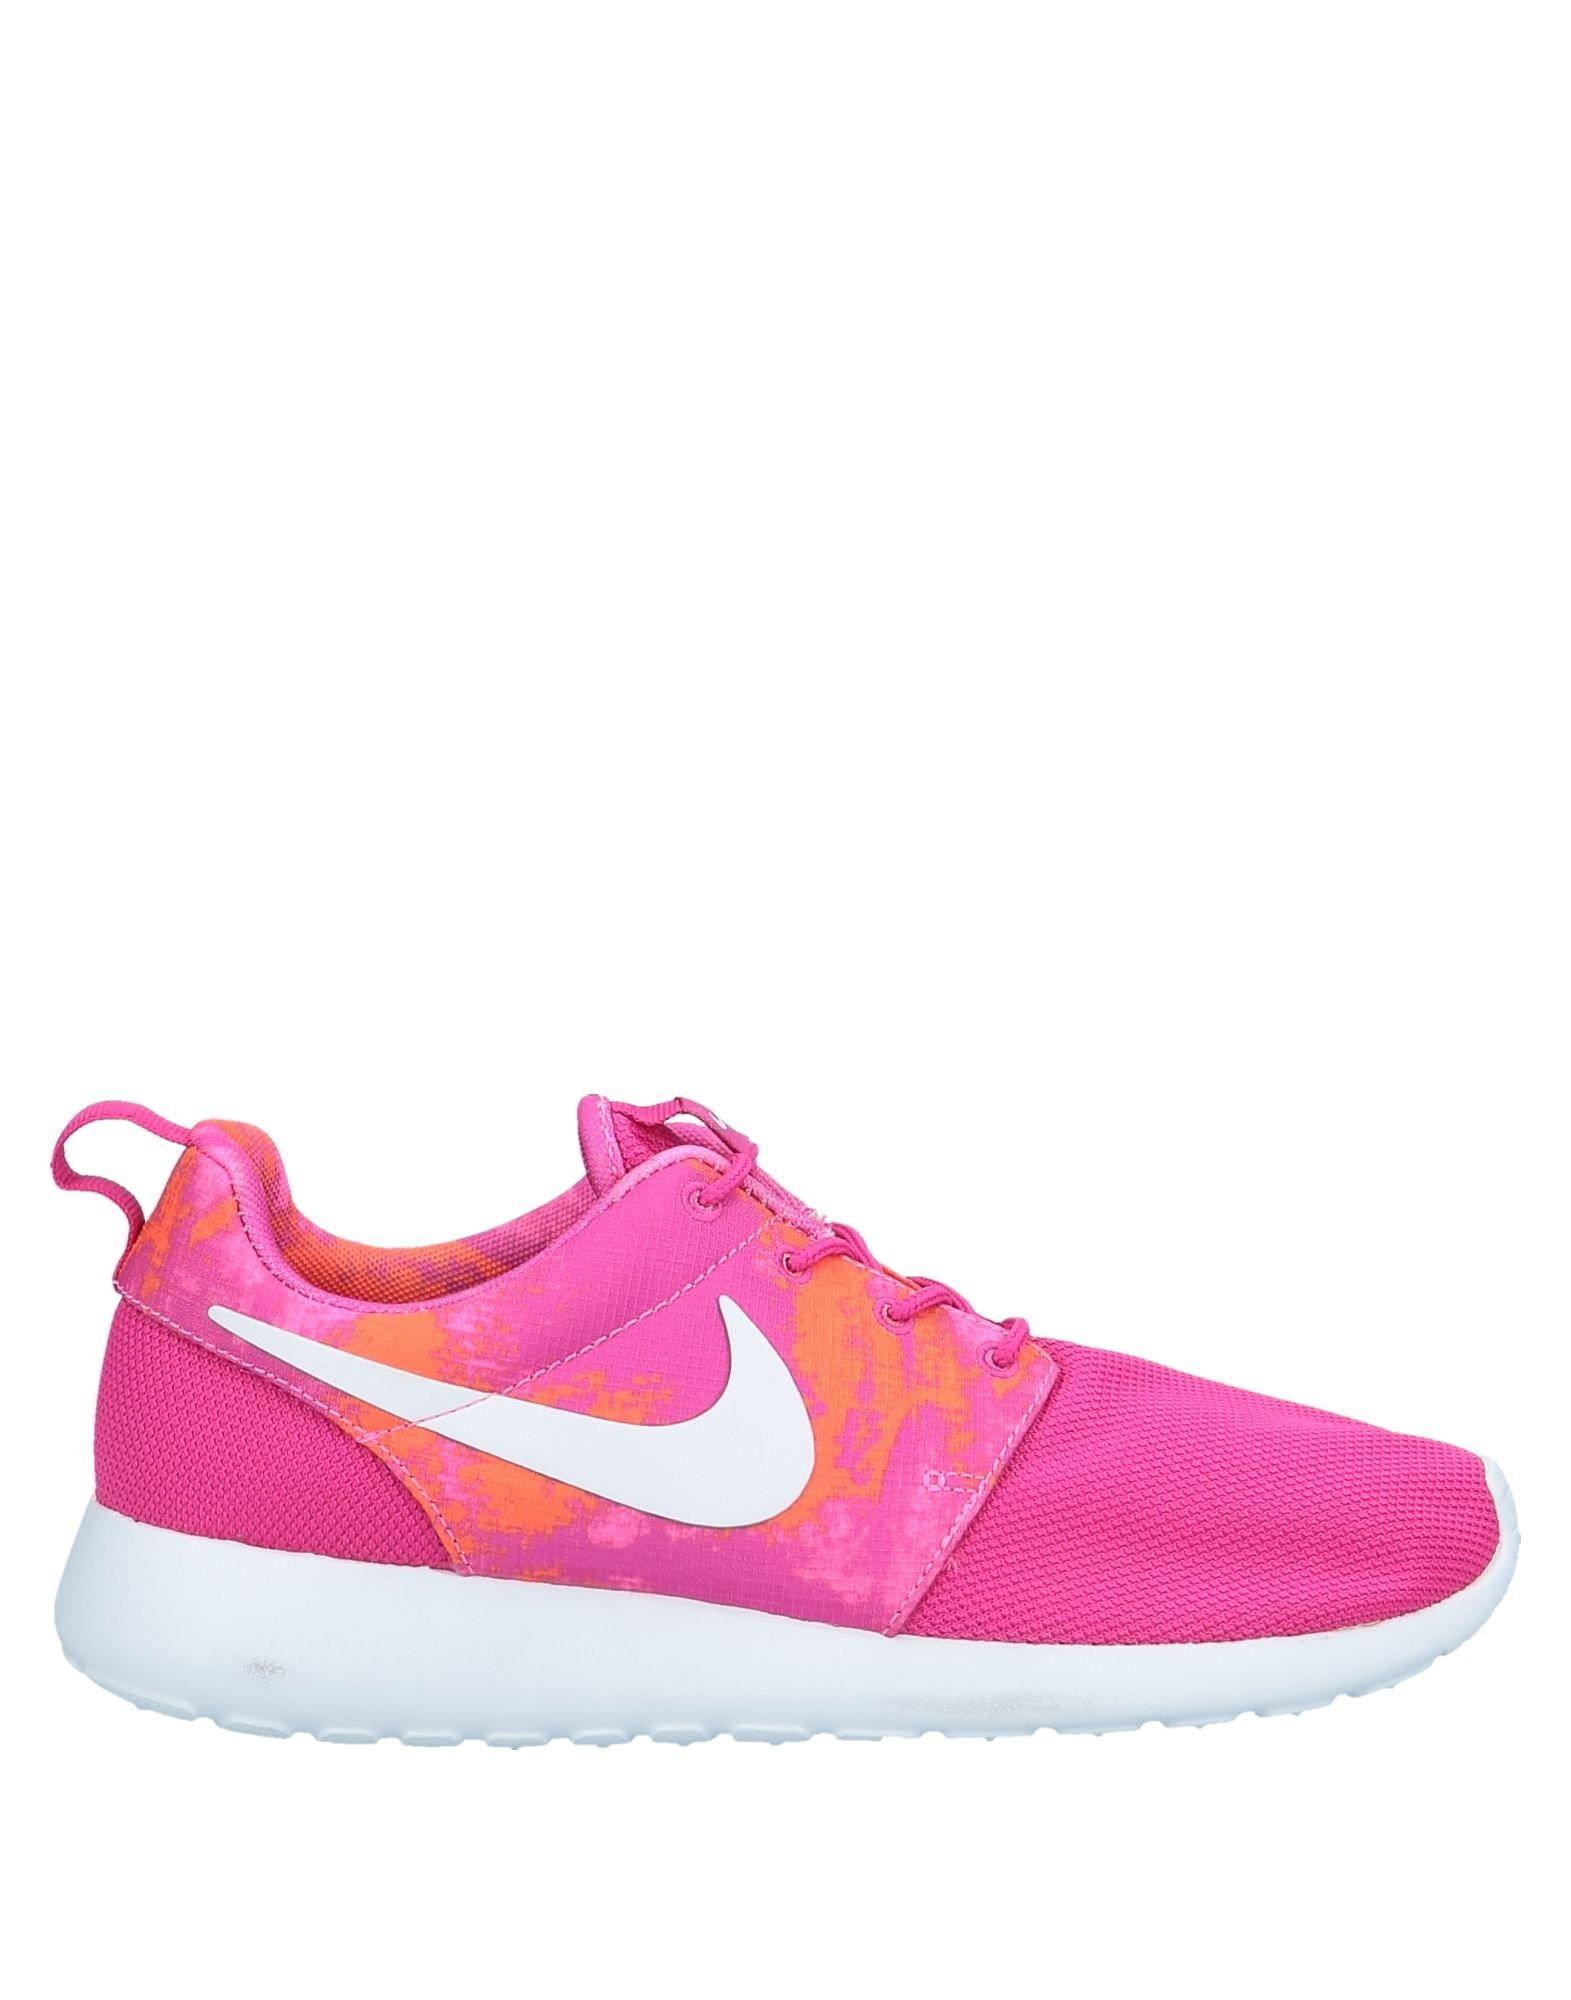 95590144a273 Lyst - Nike Low-tops   Sneakers in Pink